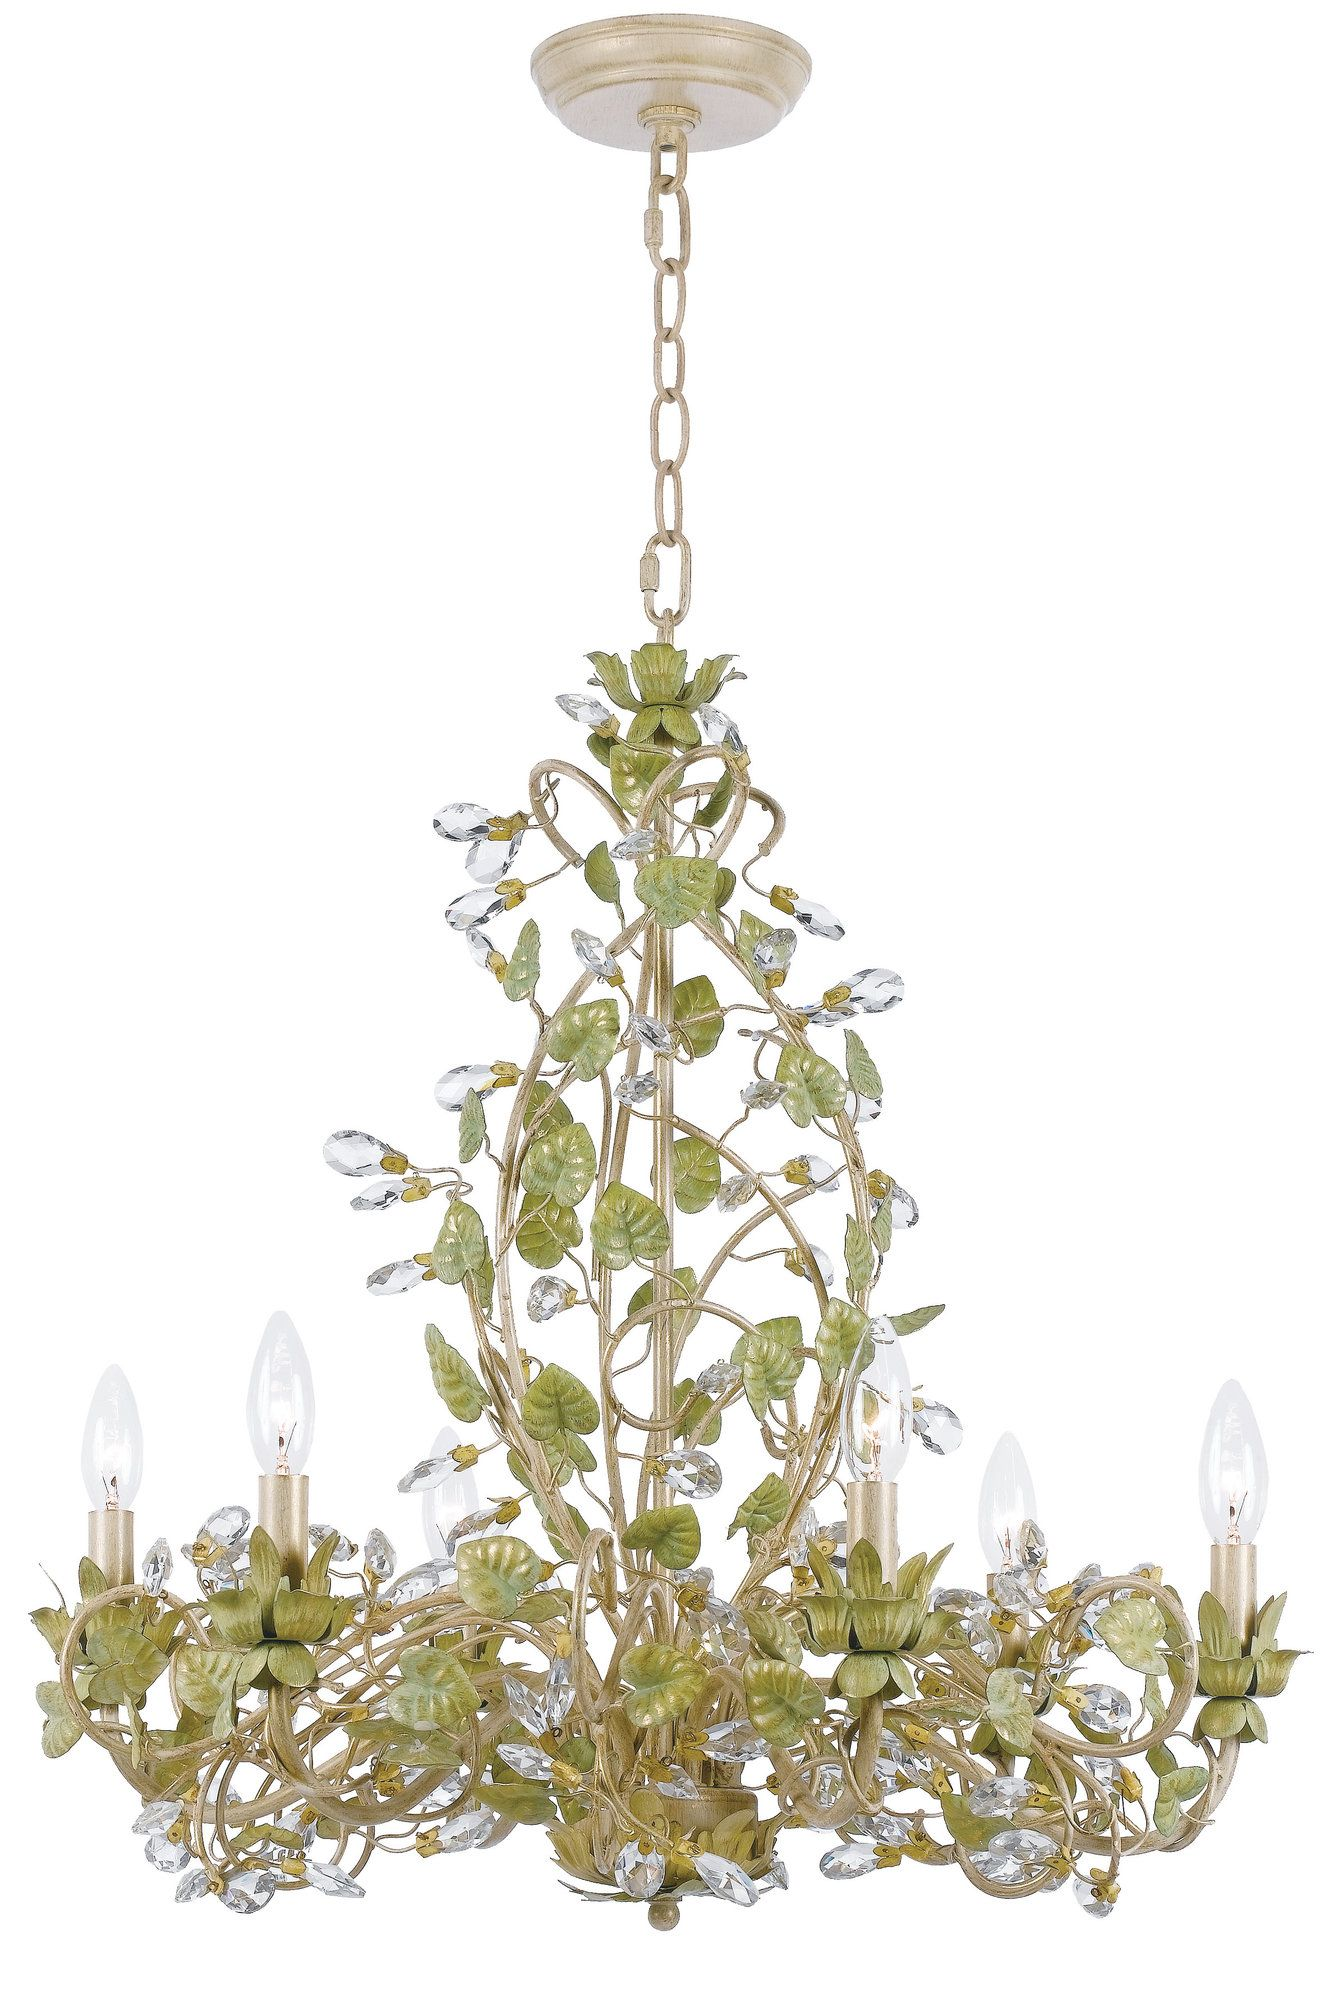 Chearsley 6 light crystal chandelier products pinterest crystorama chandelier fixture model crystorama chandelier with clear crystal accents and wrought iron handpainted in champagne green tea finish arubaitofo Images